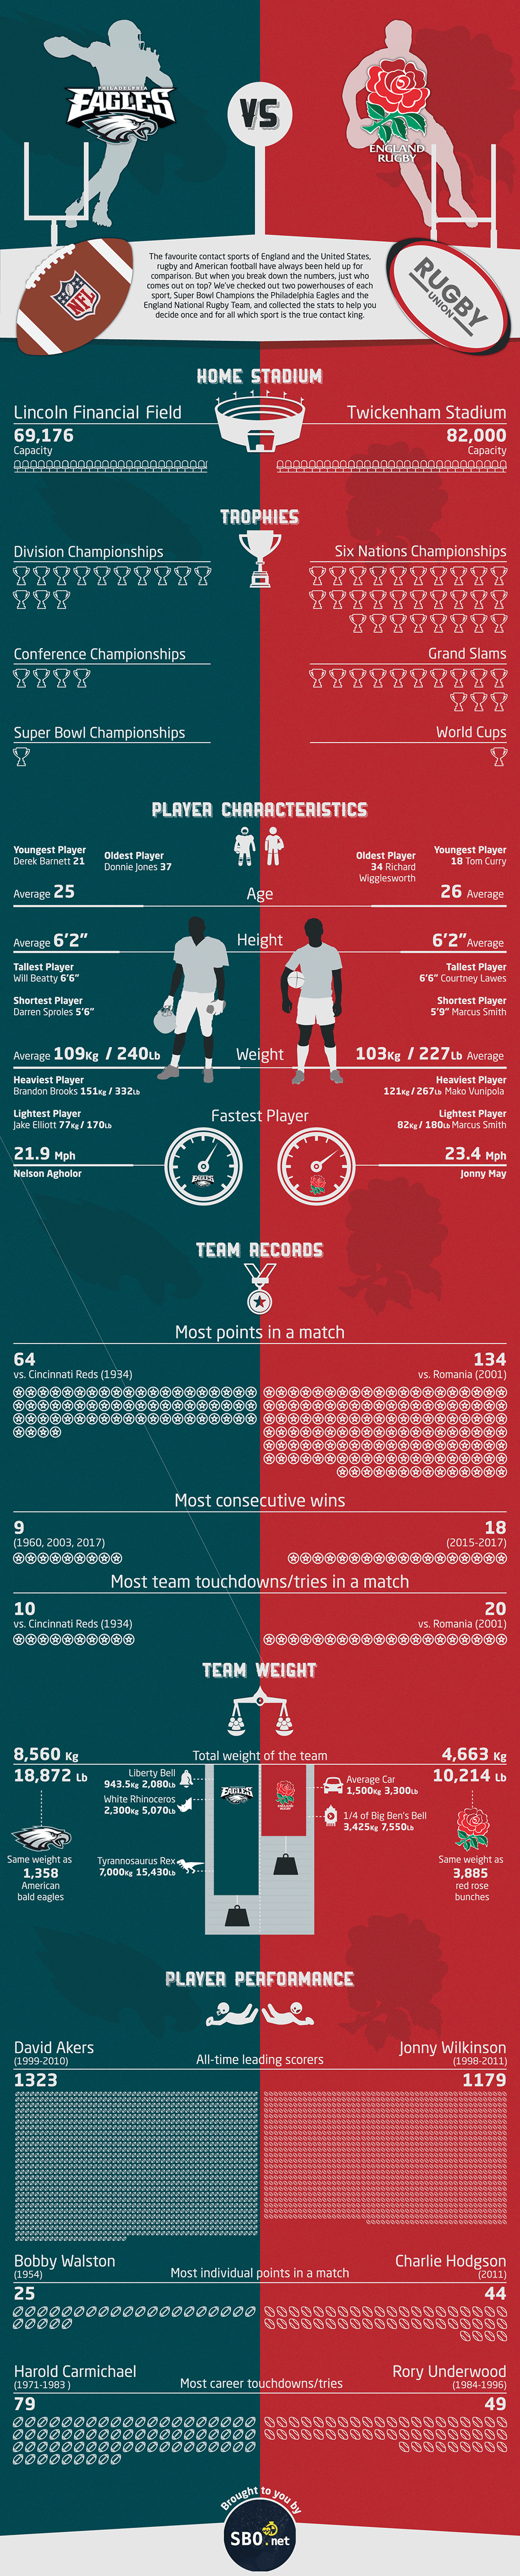 Infographic: American Football vs. Rugby - NFL vs.English Rugby Union